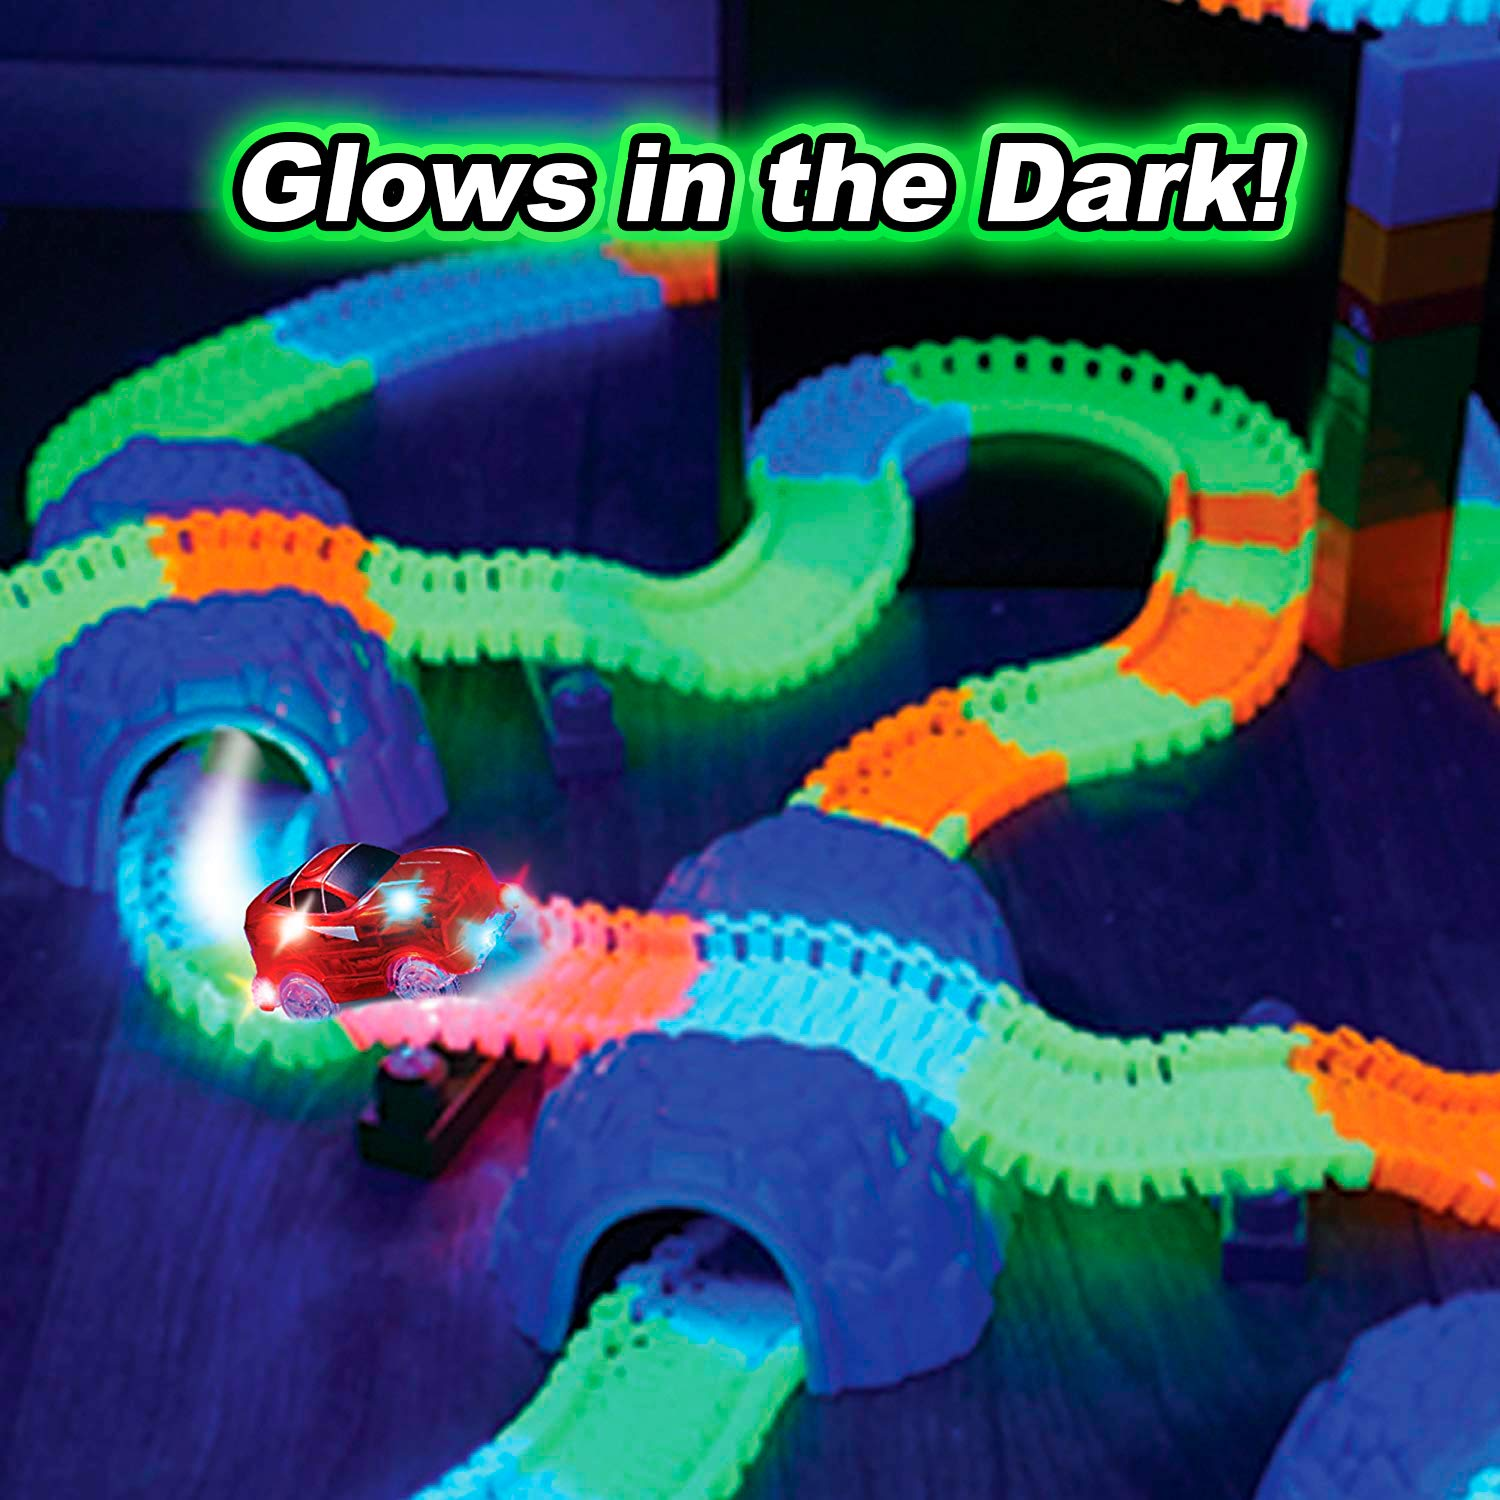 VICTOREM Twister Tracks Neon Glow in the Dark - 165 Pieces of Flexible Bendable Magic Race Tracks with 1 LED Race Car Customizing Speedway Toy Set for Kids Christmas / Birthday Gift VTM021-165P